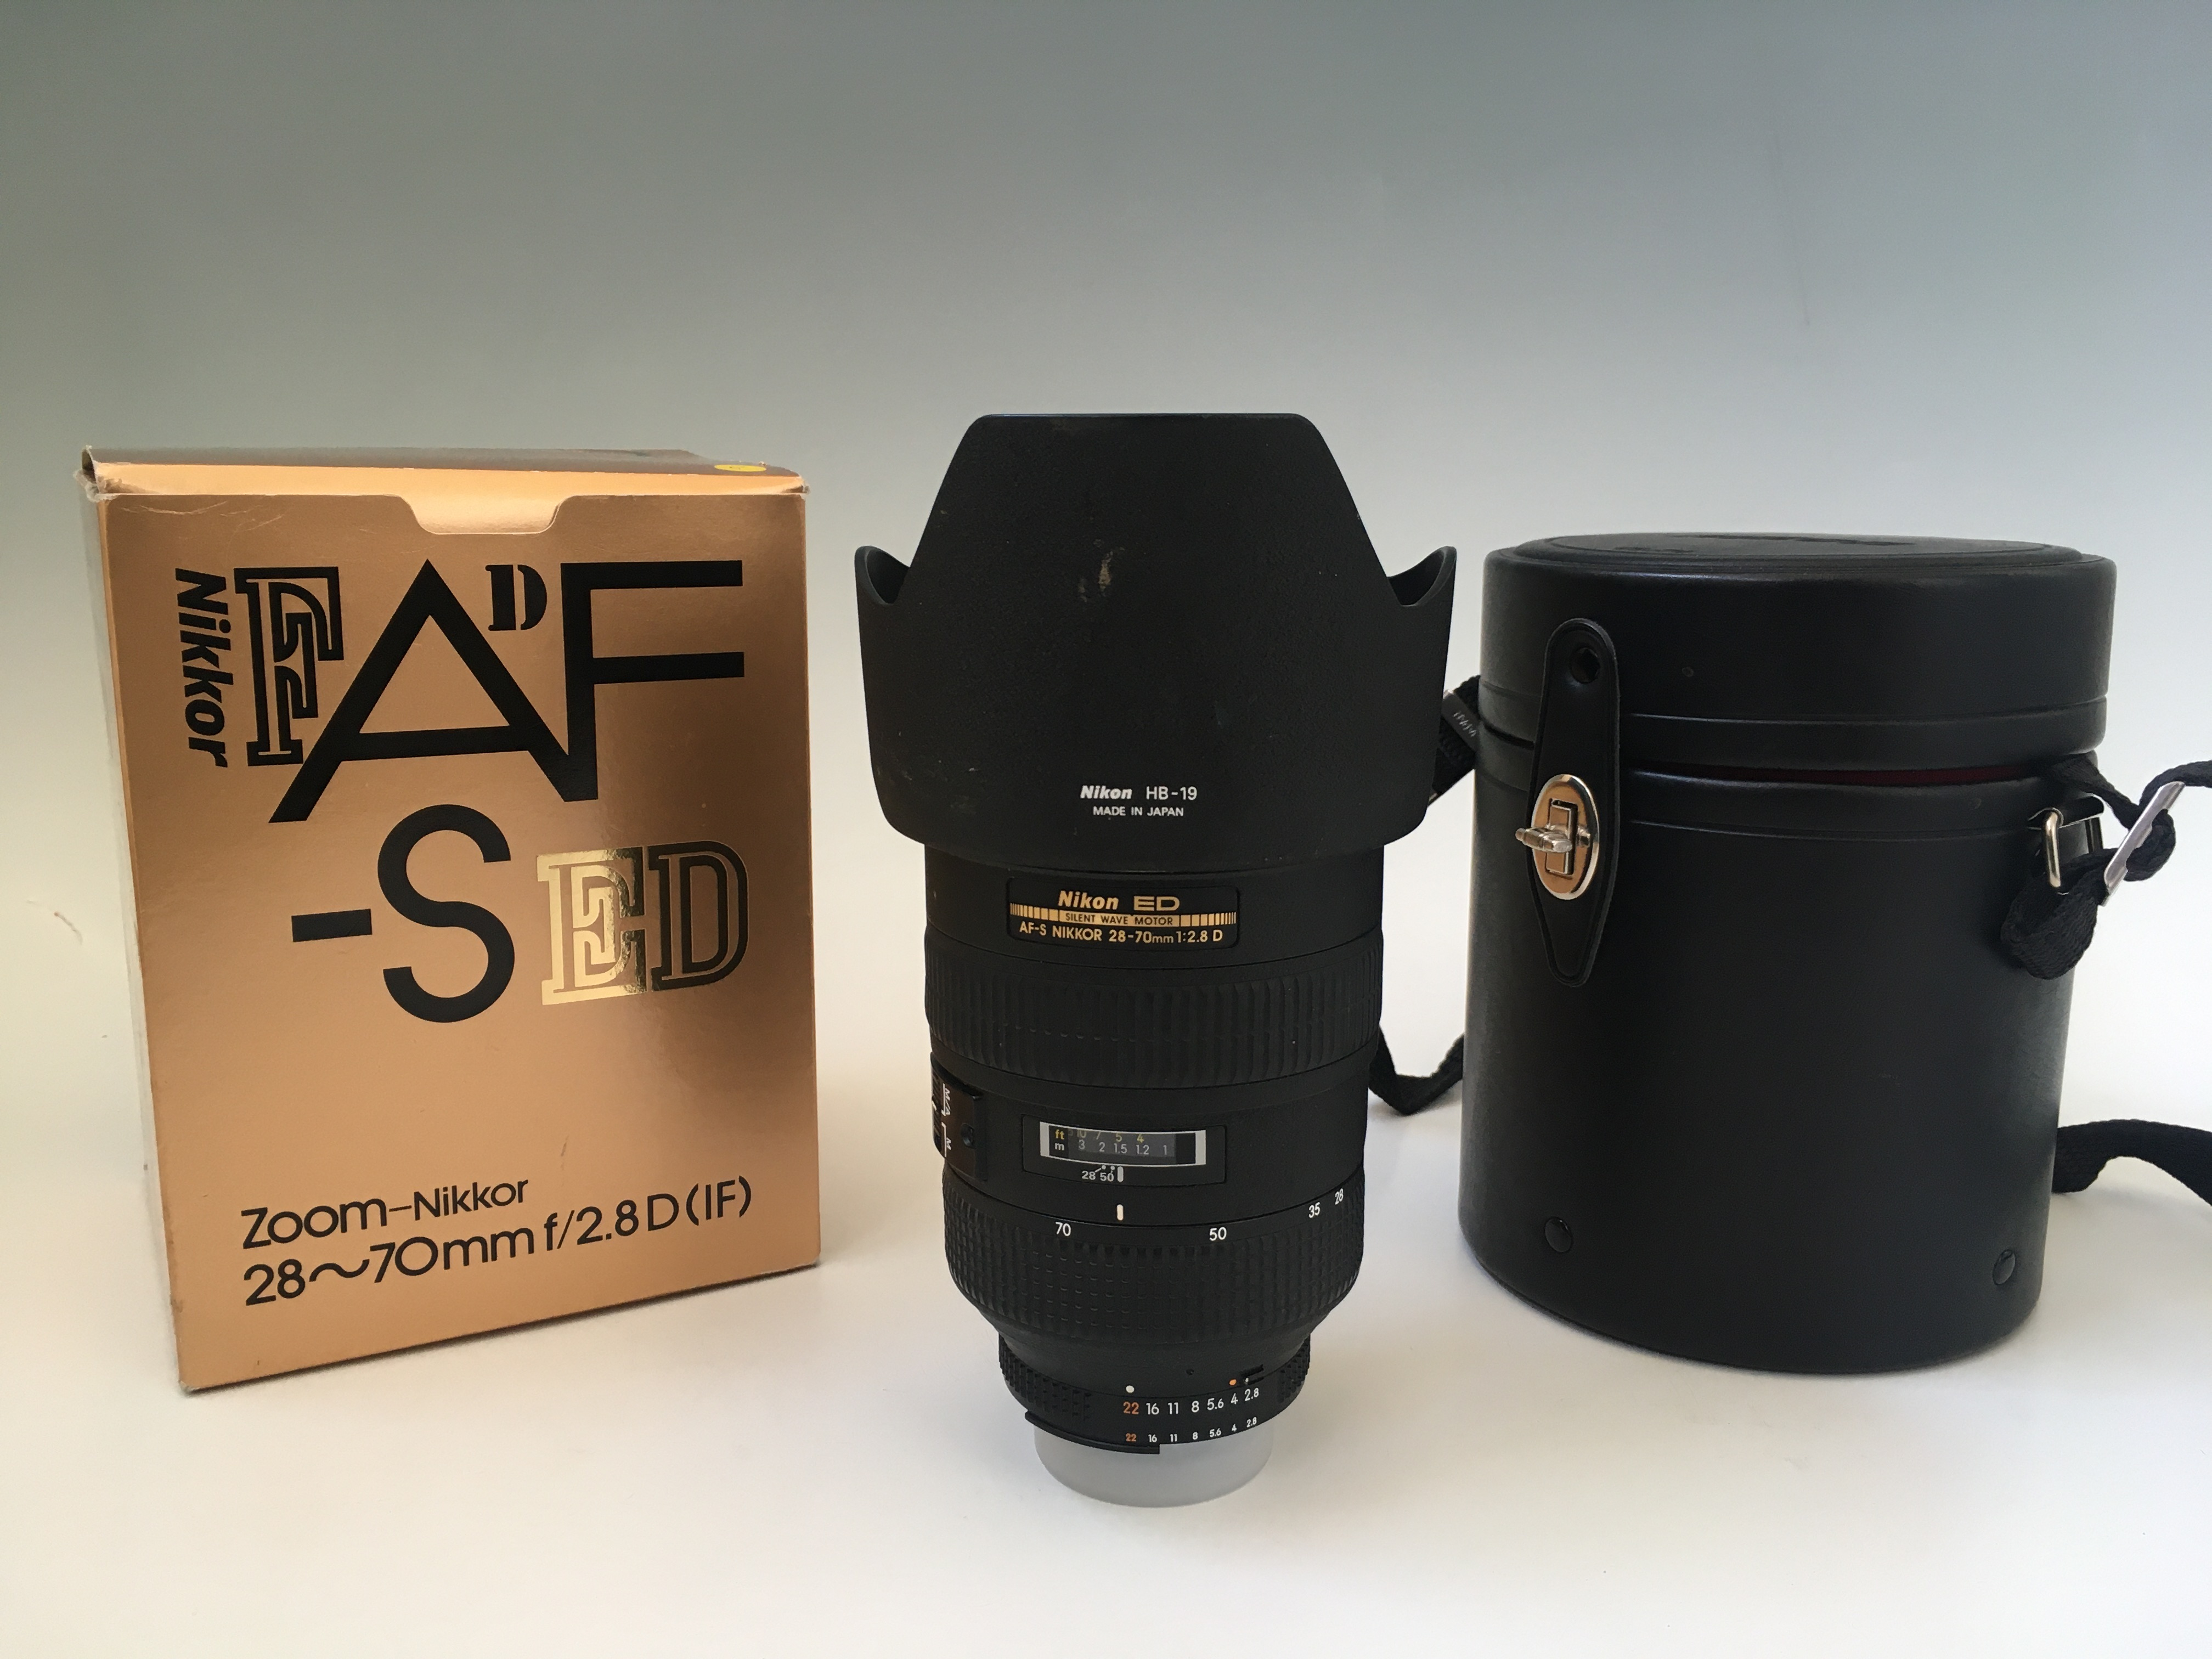 A Nikon zoom lens 28-70mm f/2.8D (IF), in case and box. IMPORTANT: Online viewing and bidding